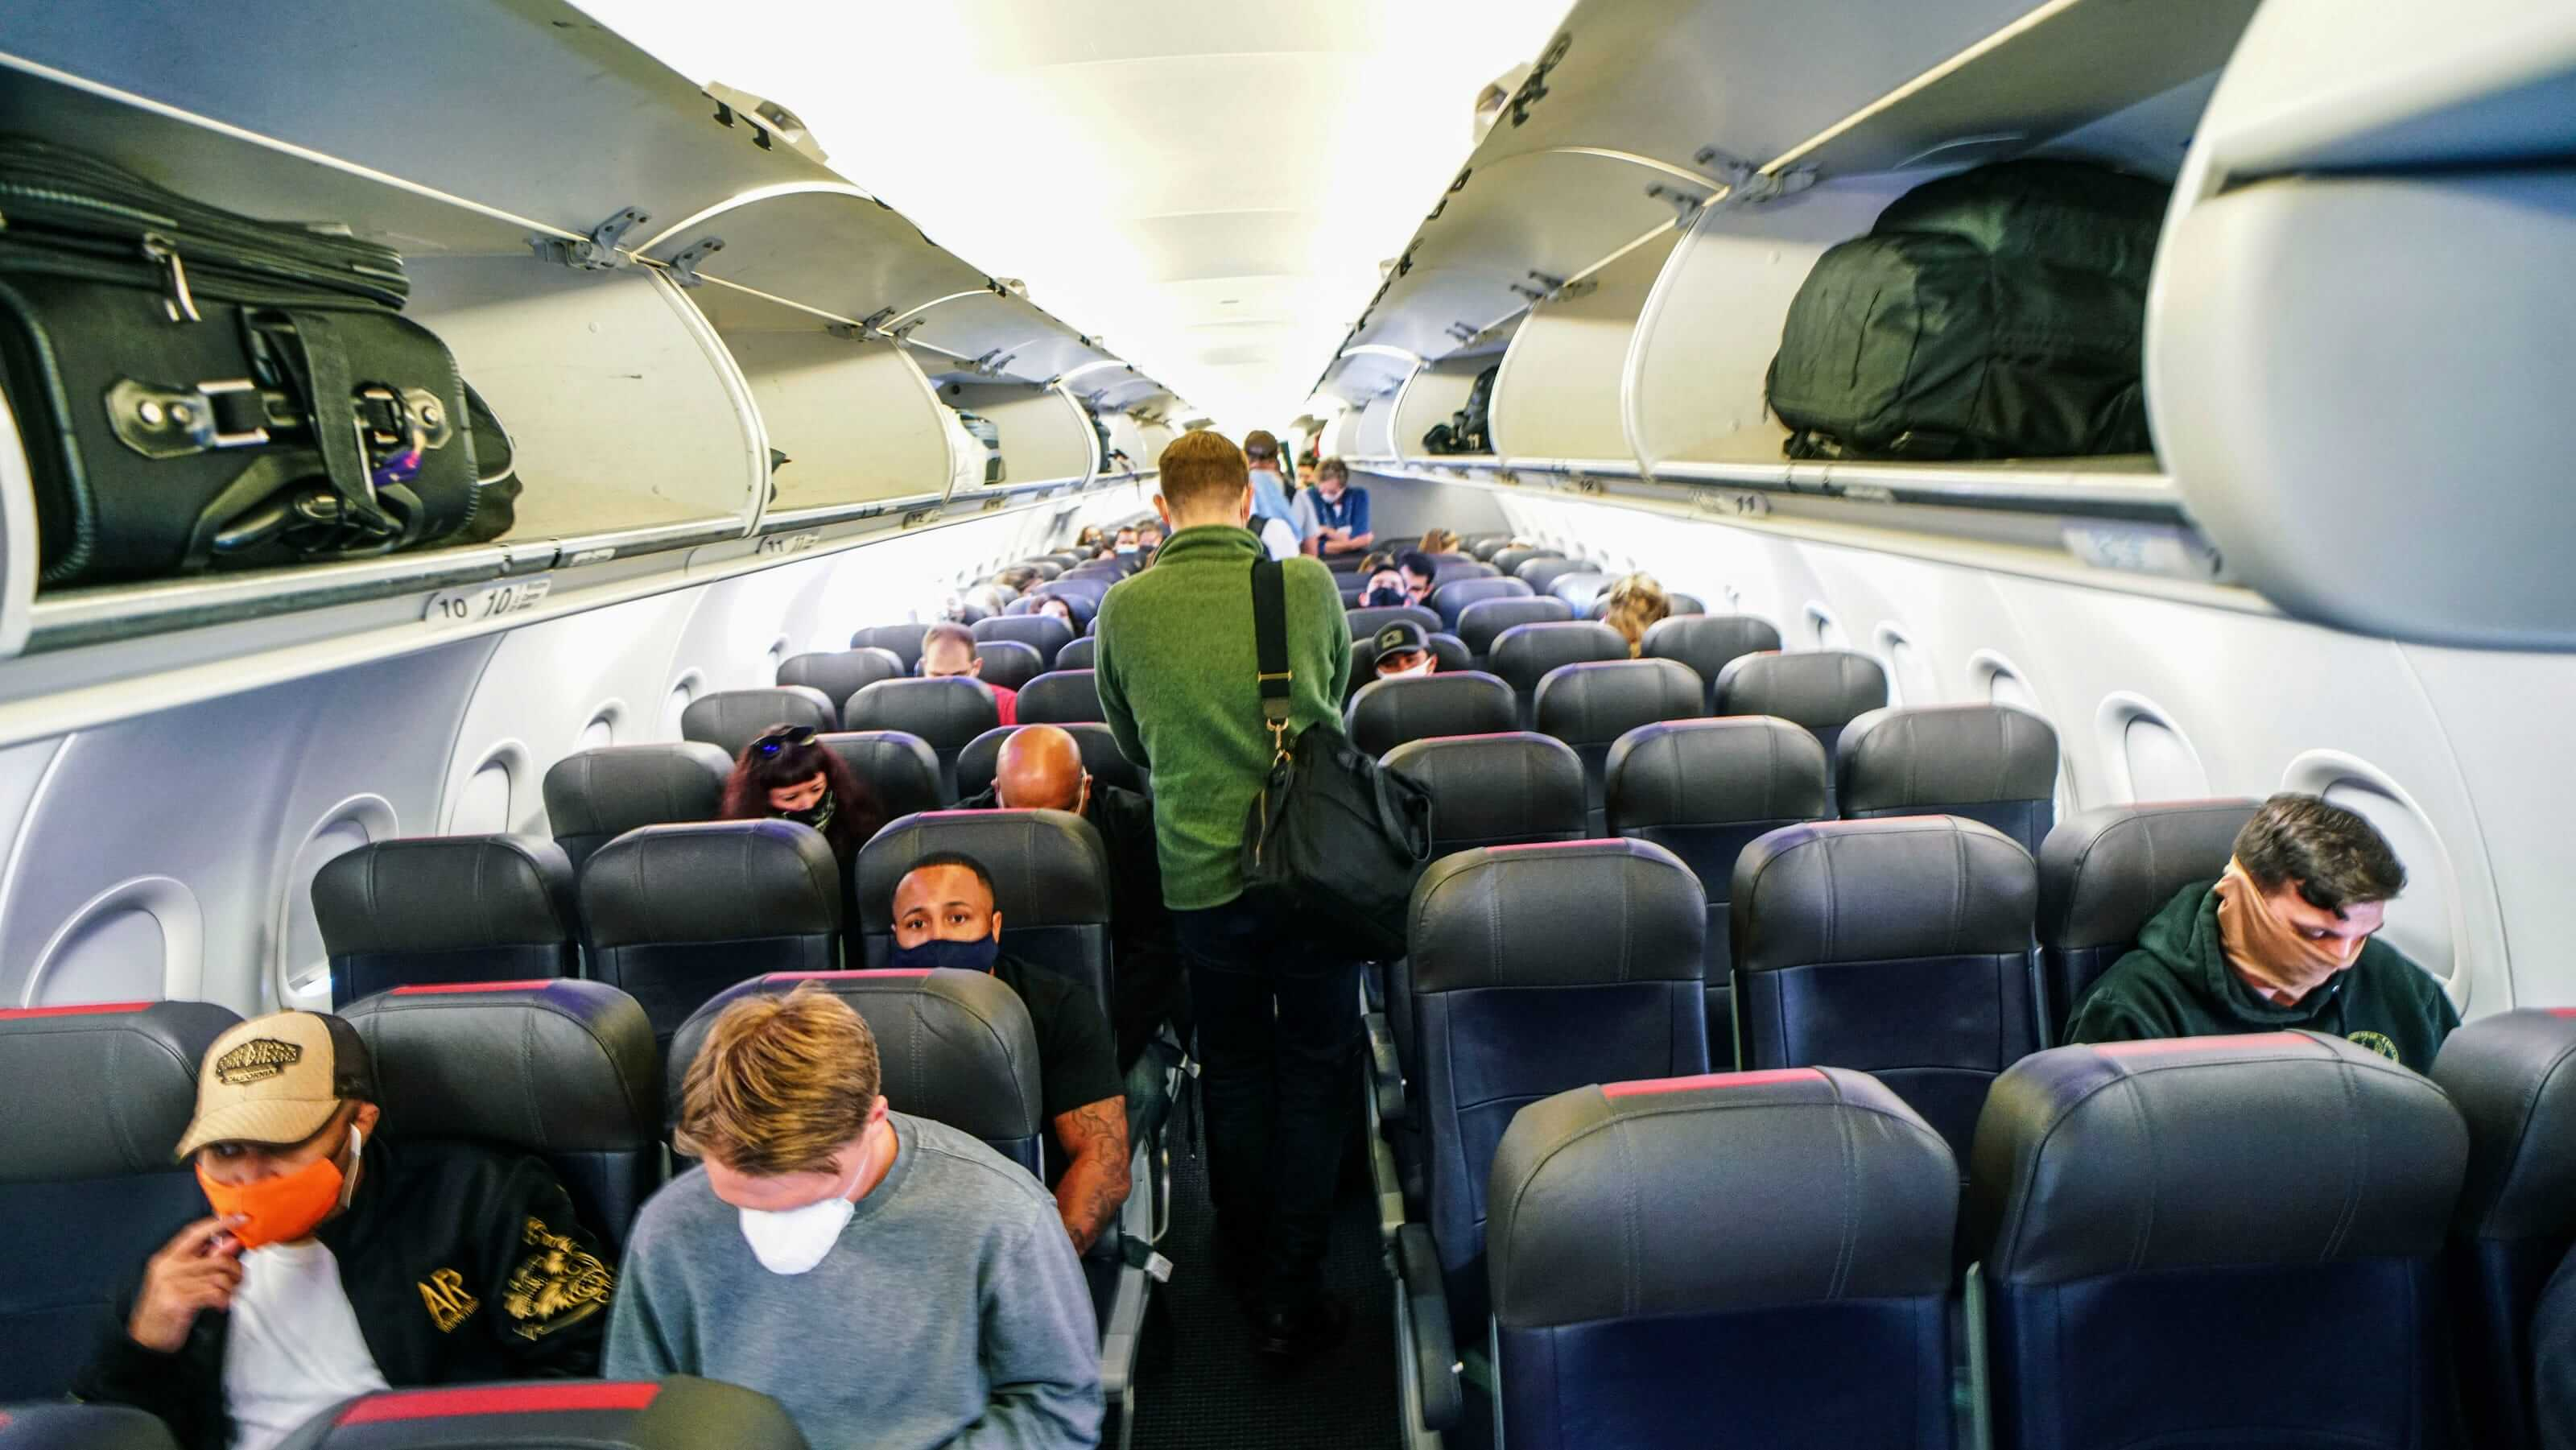 The government is mandating vaccination for most U.S. workers. Are airline passengers next?, AMER EXPERIENCE